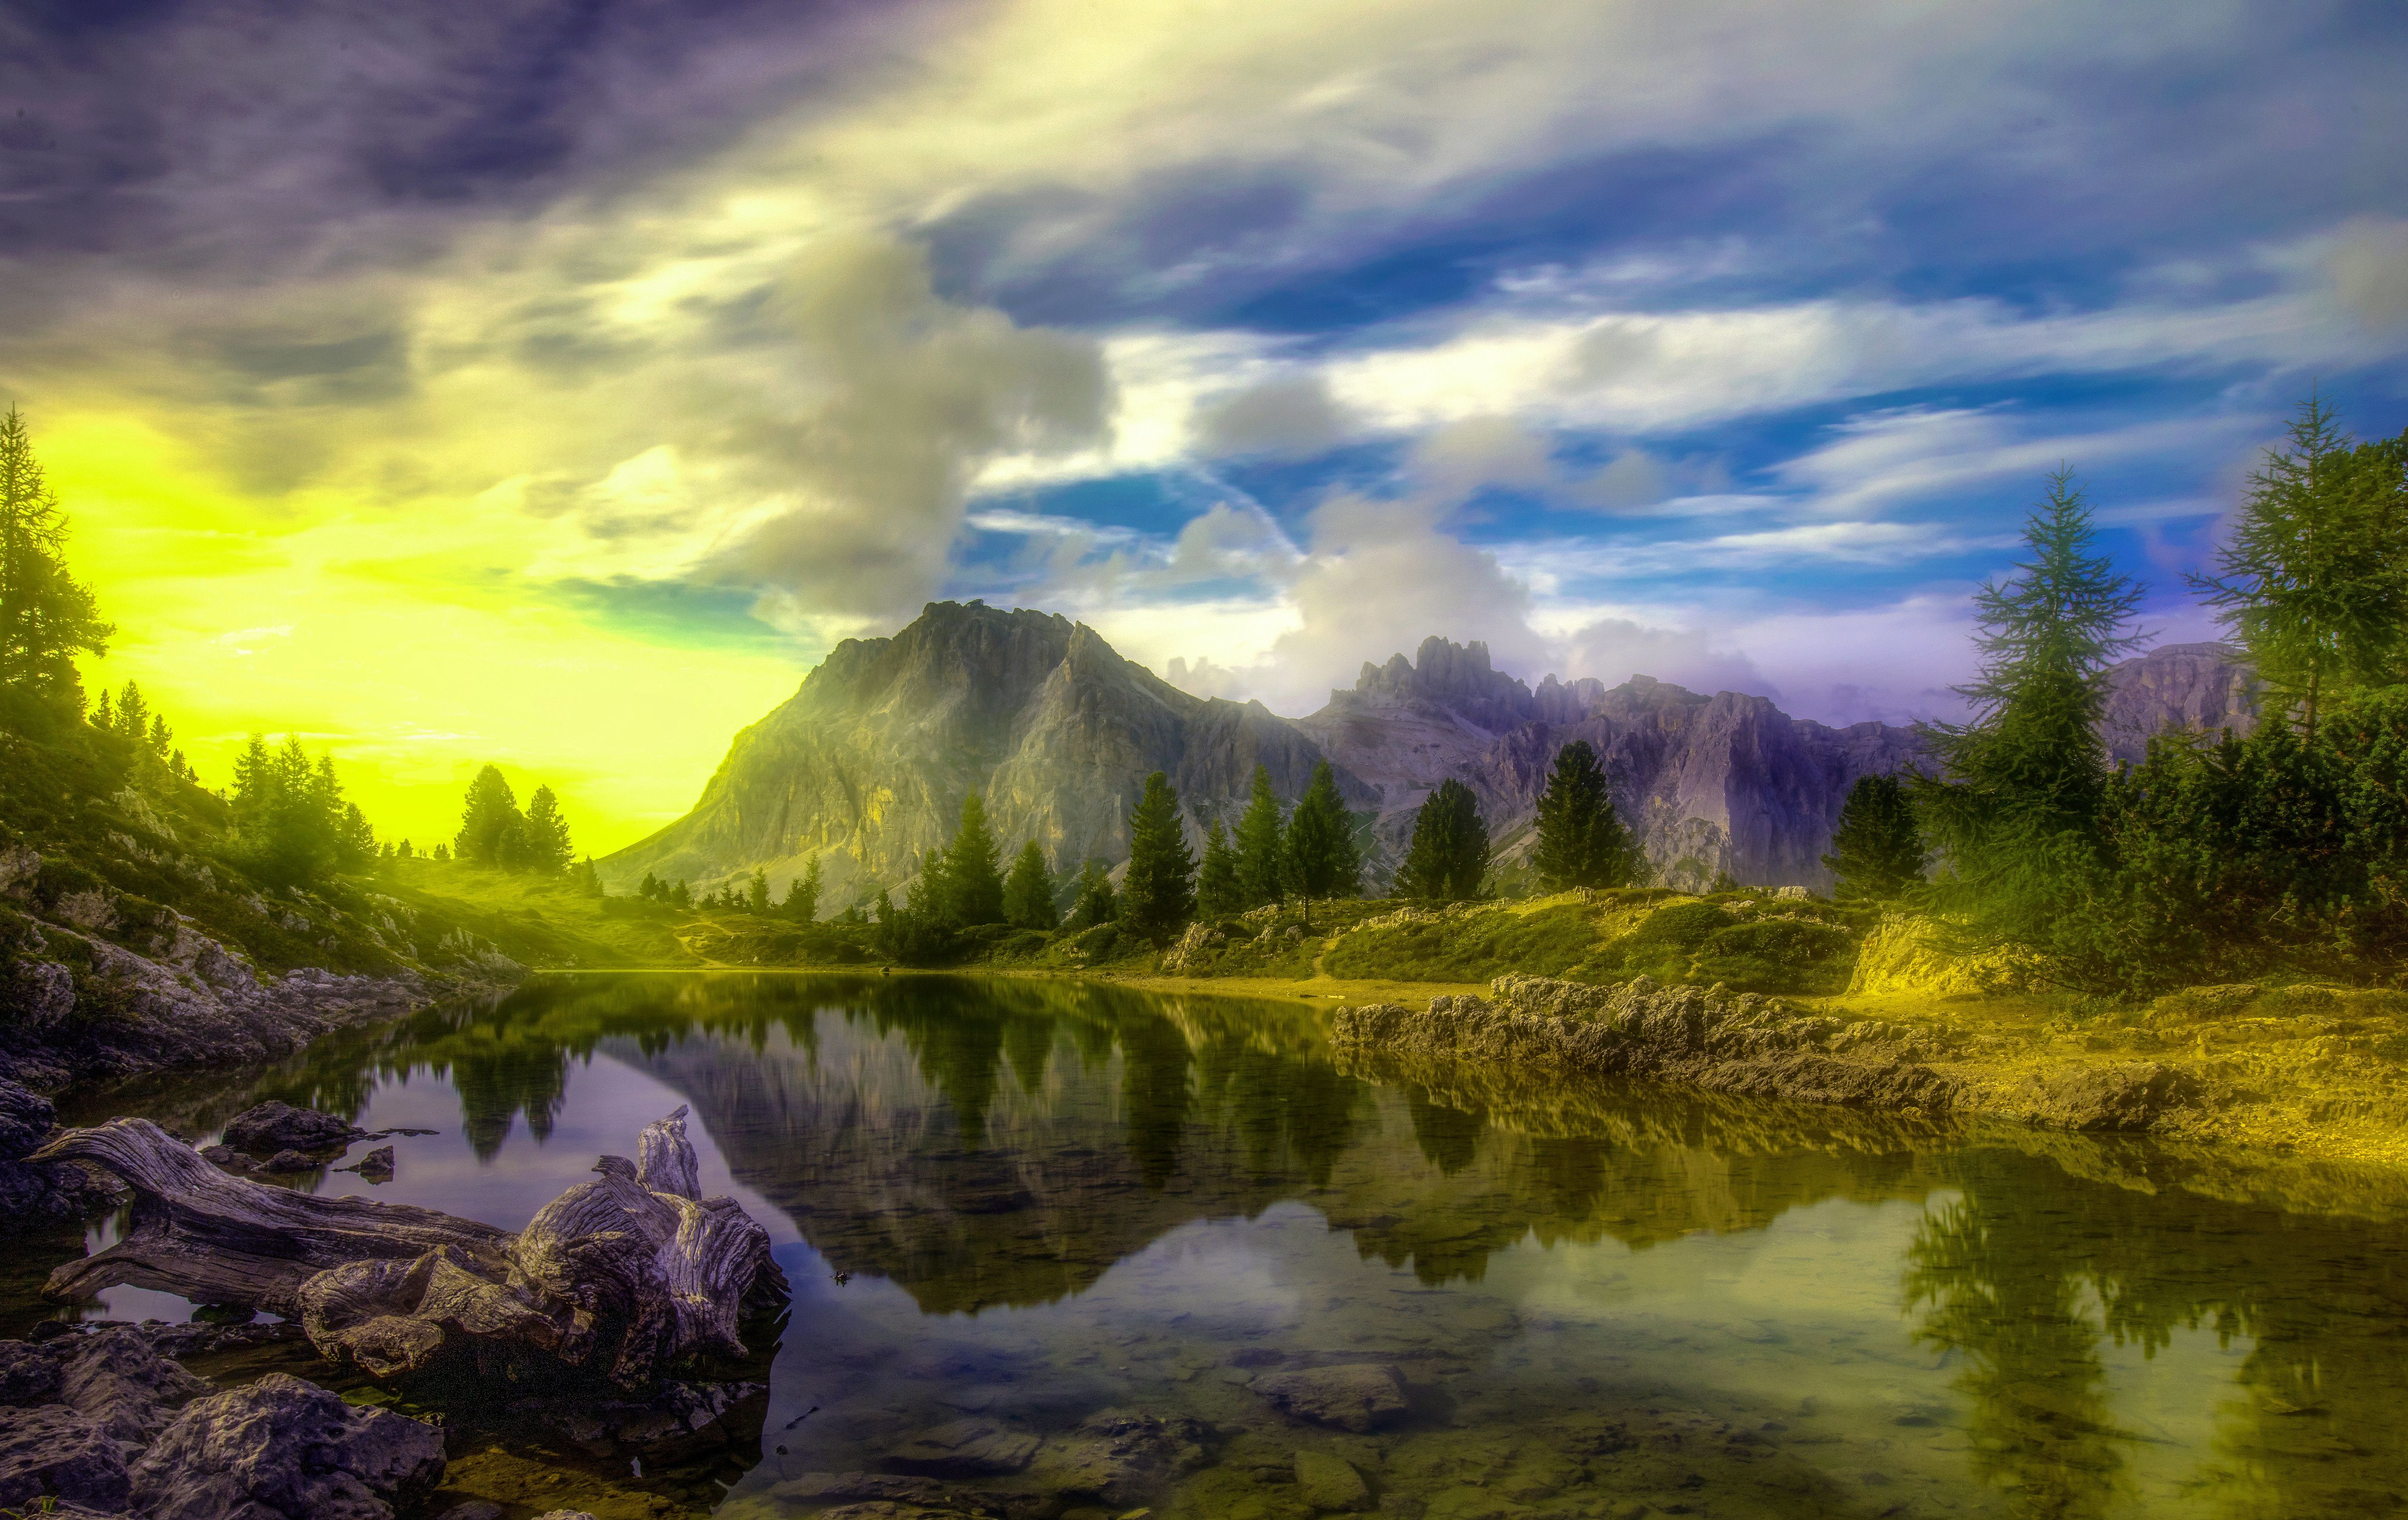 Lake Dolomites Trees Alps Hd Nature Wallpapers Nature Wallpaper Nature Hd Wallpaper